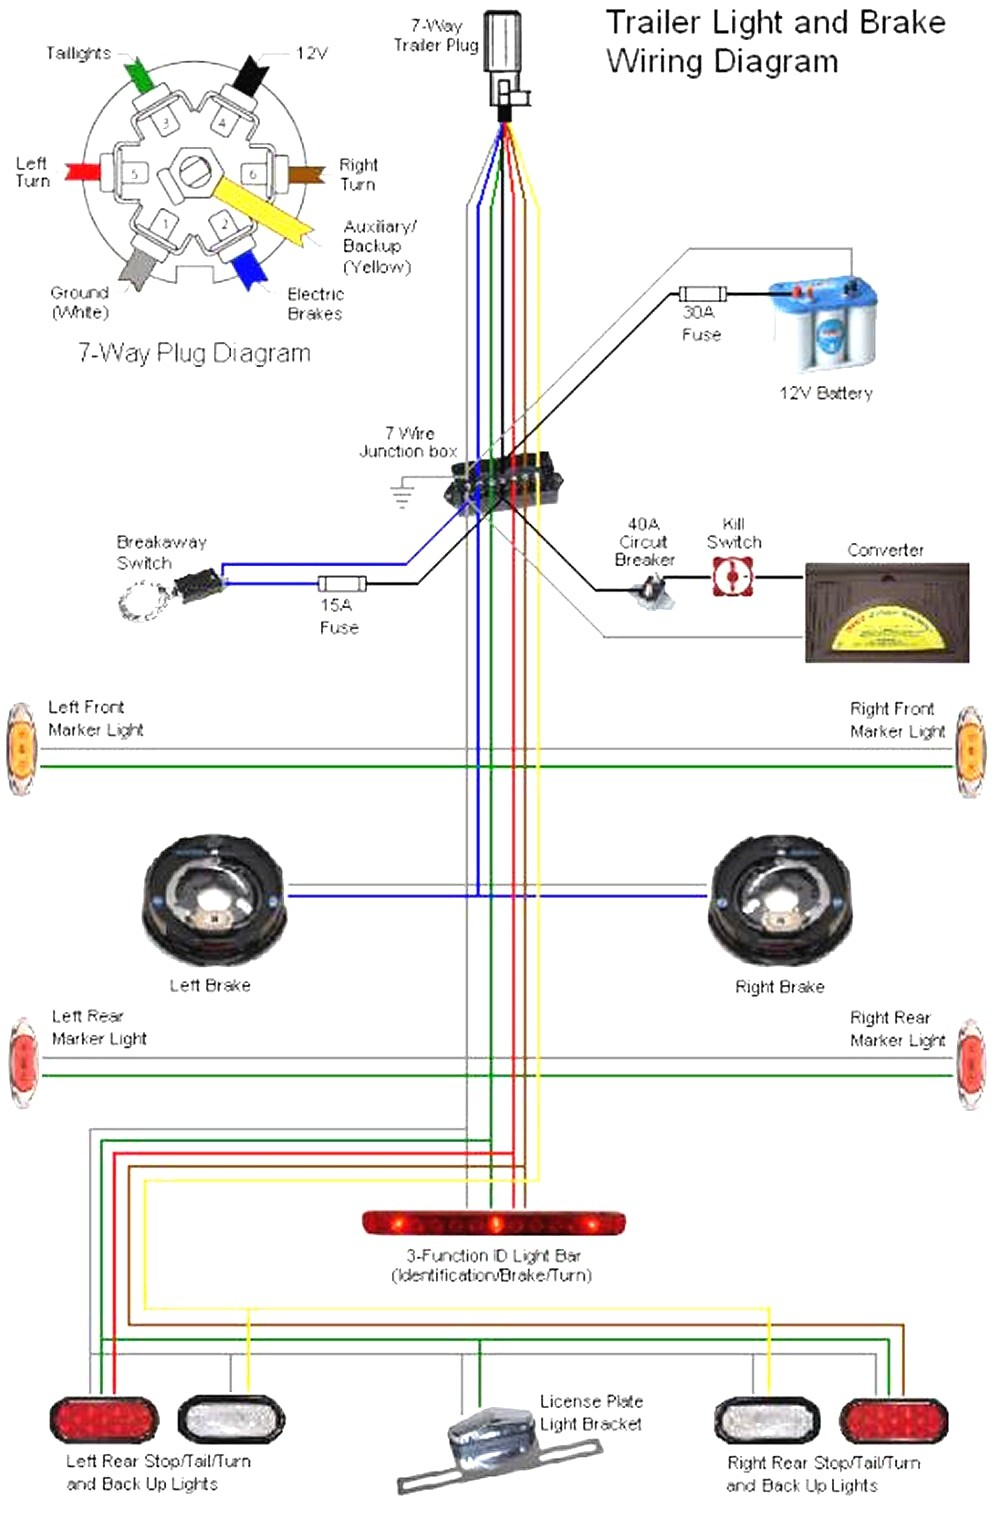 Lc 2961 What Functions Are Needed On A 7way Trailer Connector To Power A Wiring Diagram